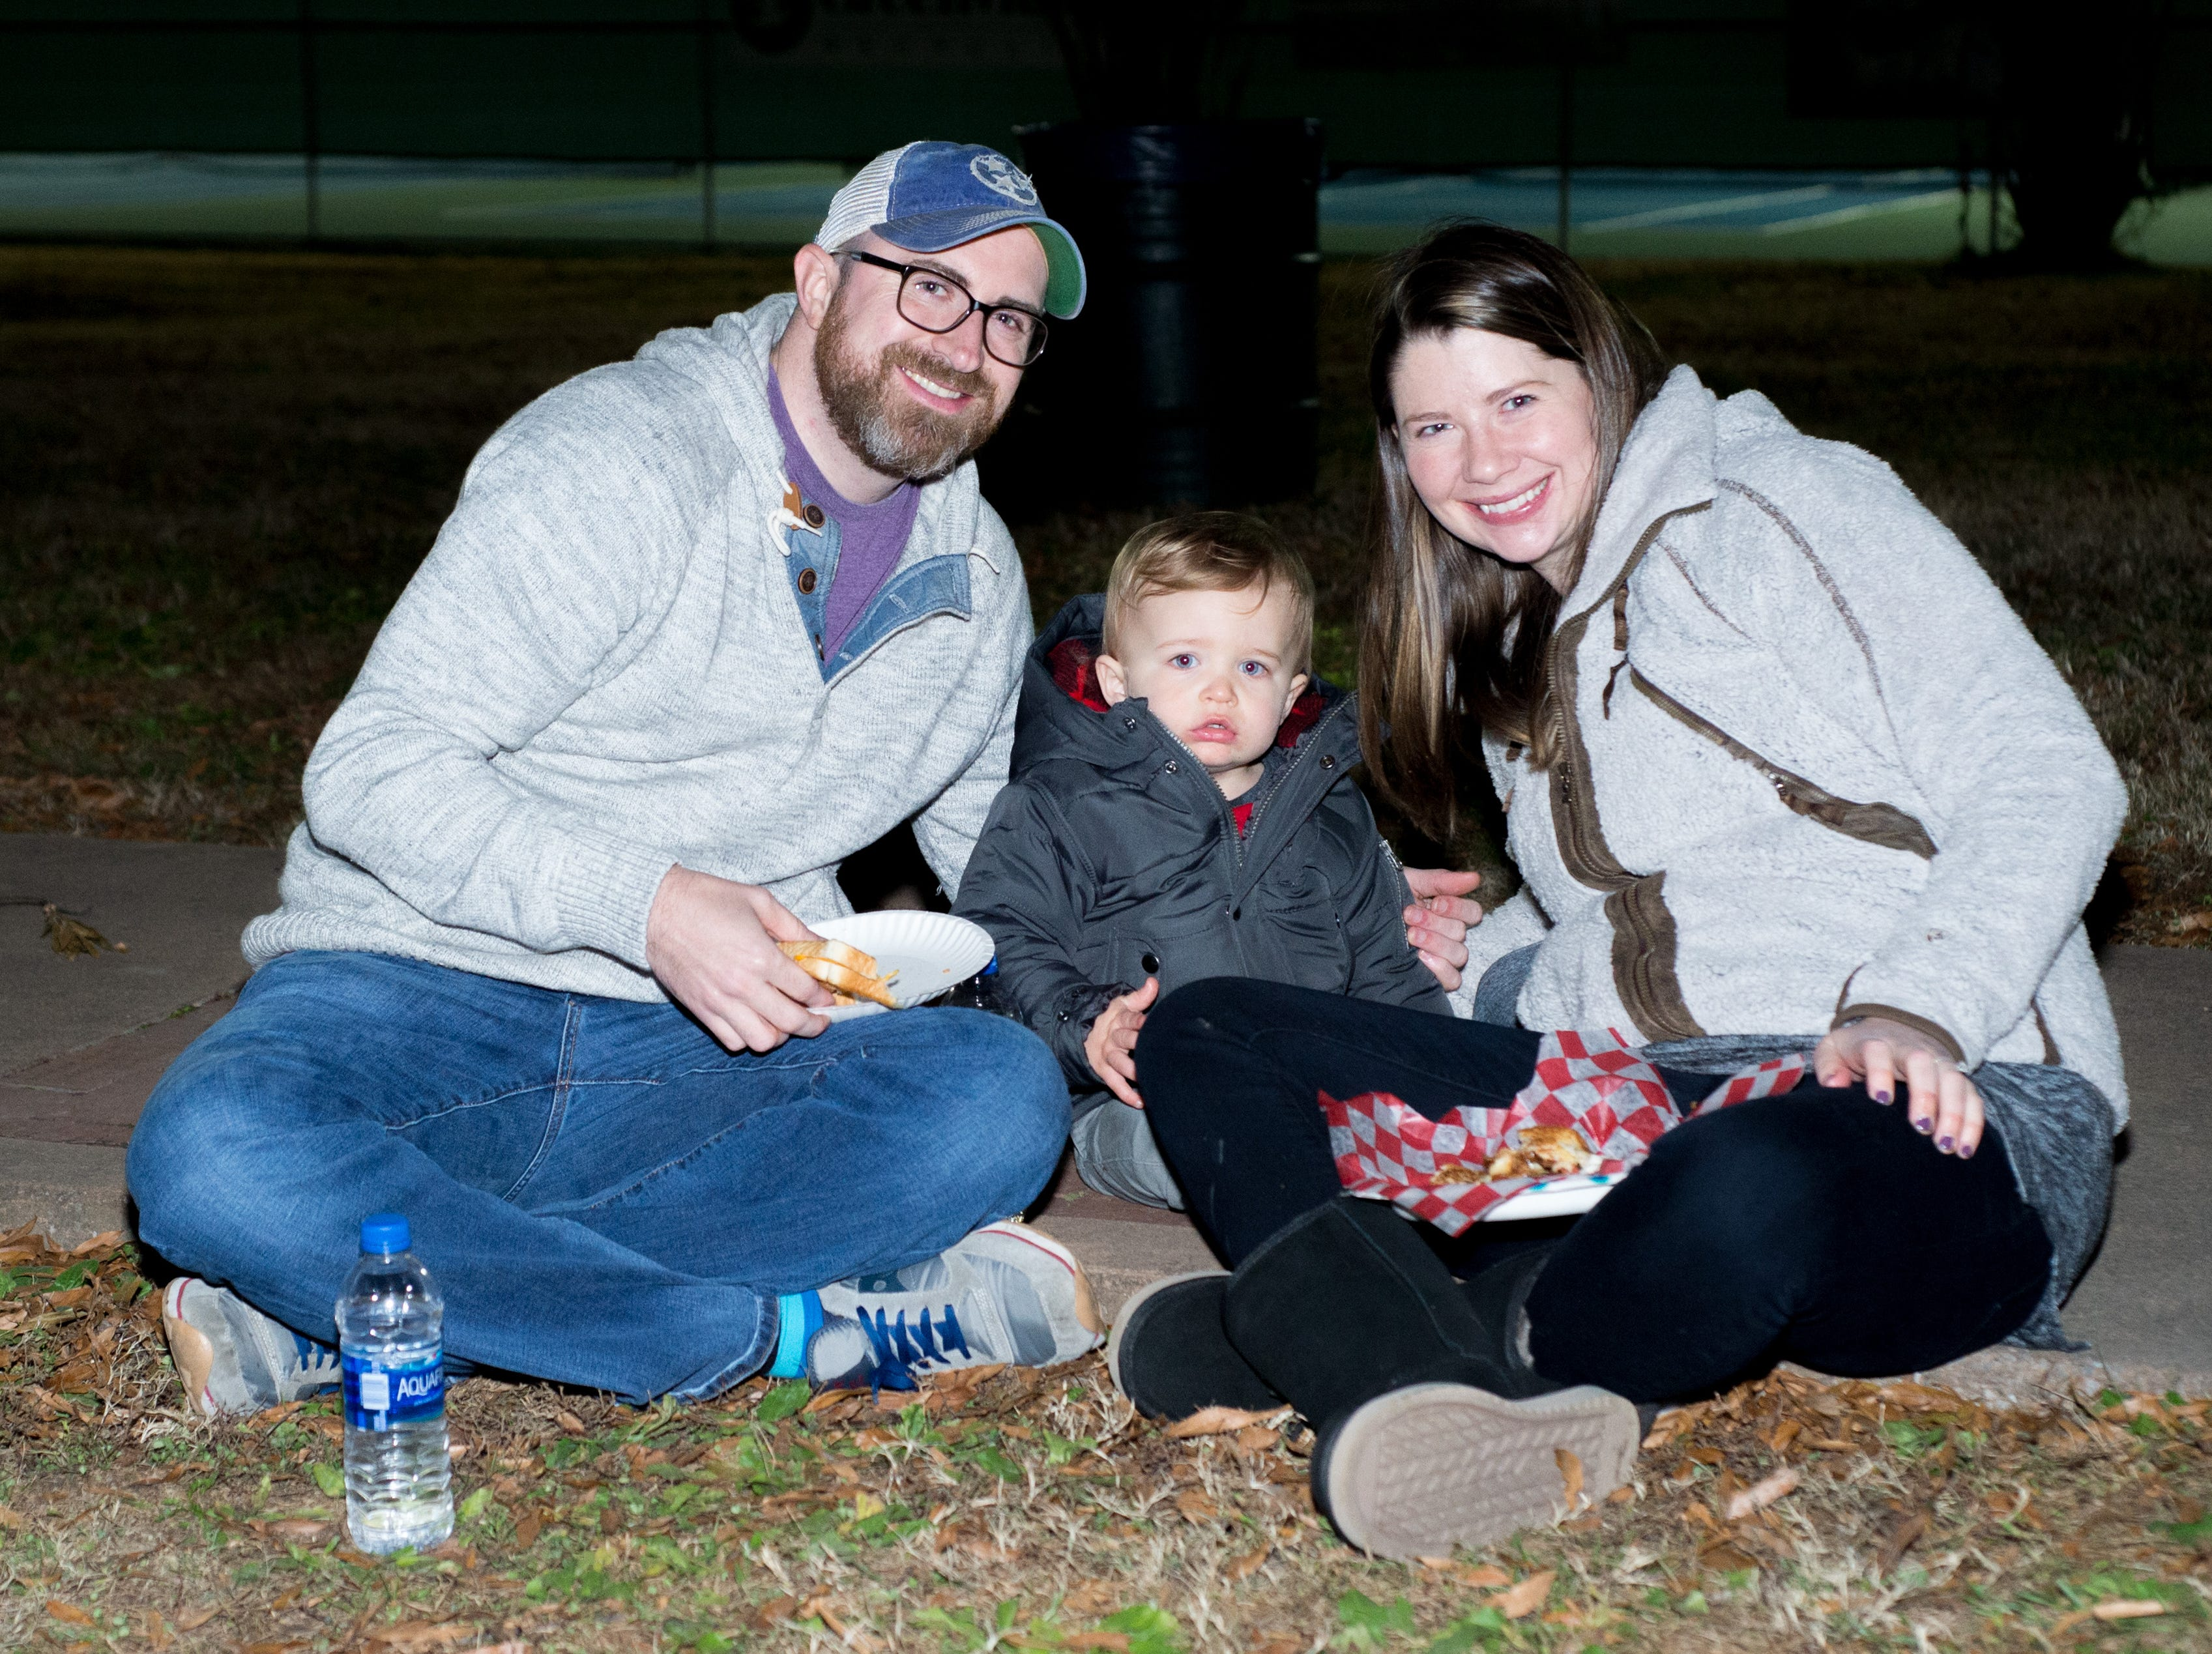 Families enjoyed the Hendersonville HolidayFest Annual Tree Lighting Ceremony at Memorial Park on Sunday, Nov. 25.